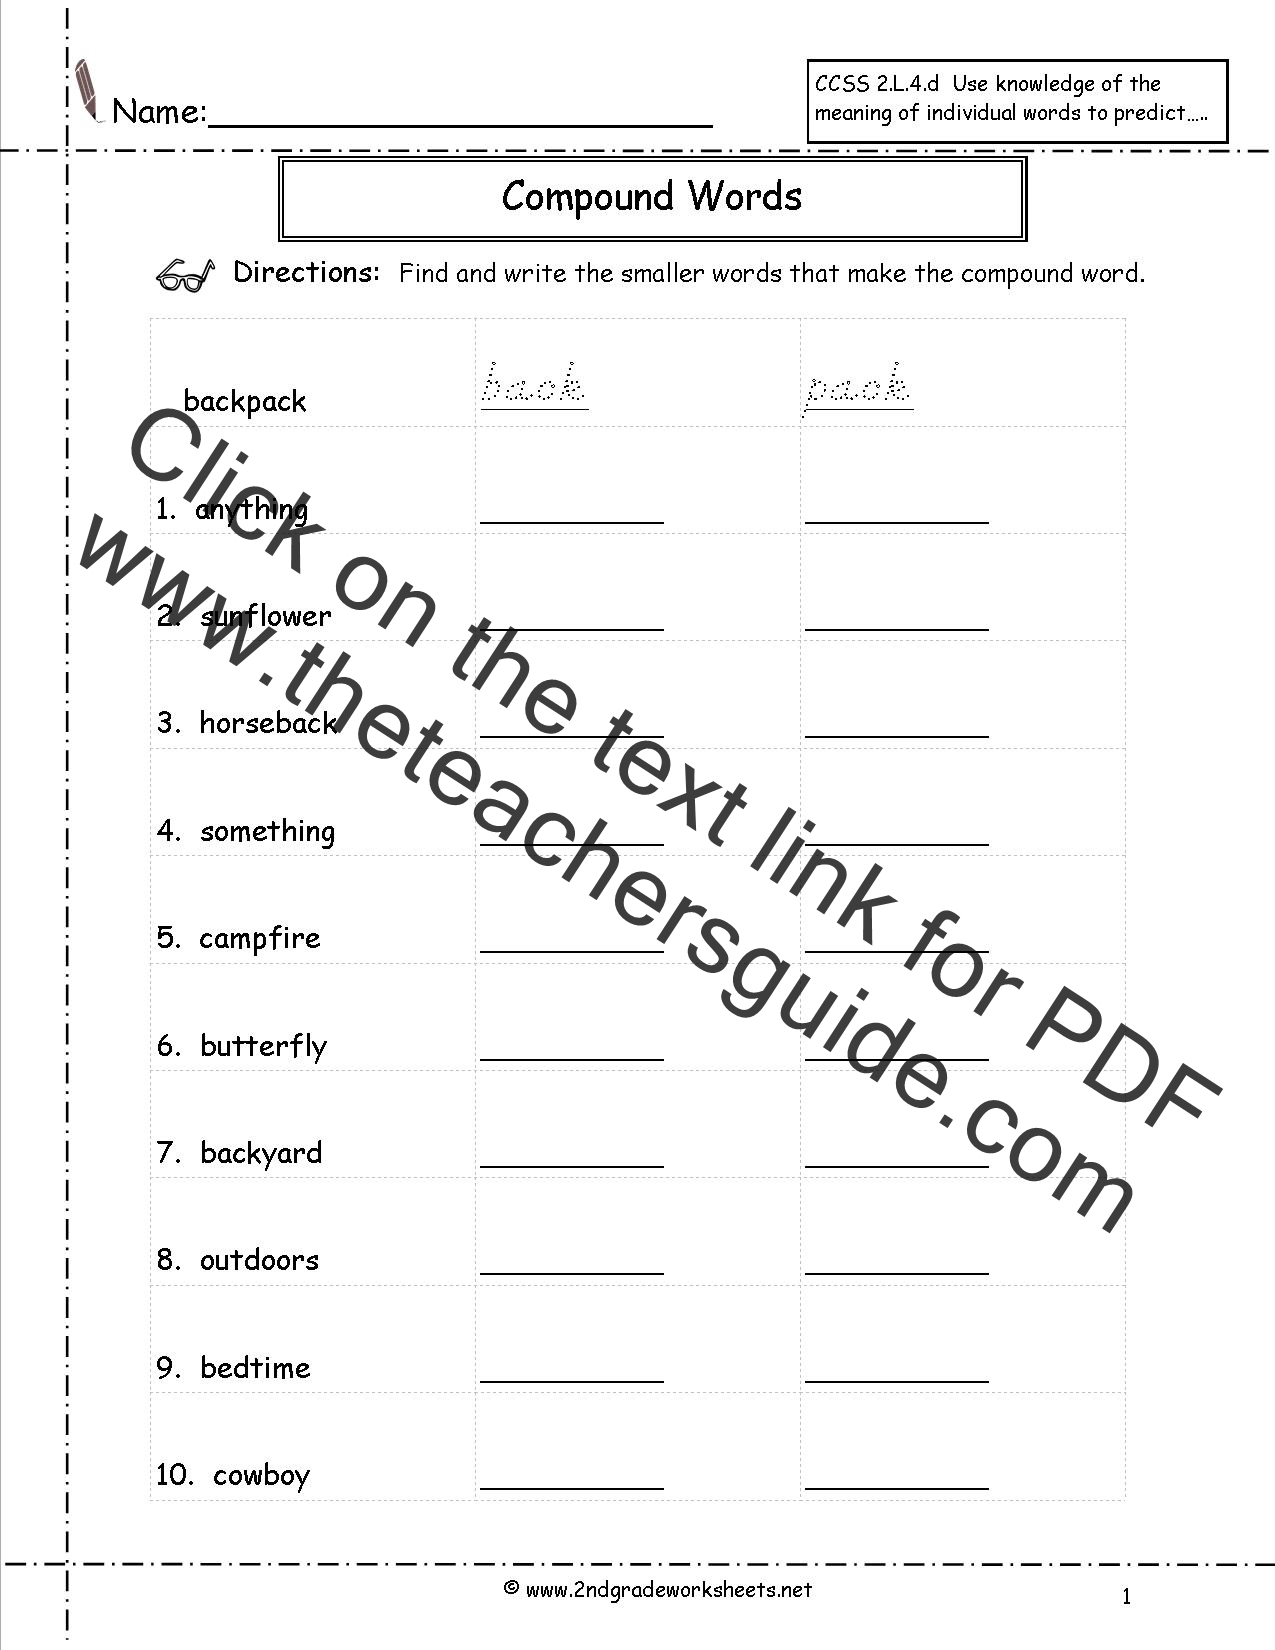 Printables Printable Worksheets For 2nd Graders free languagegrammar worksheets and printouts compound words worksheets